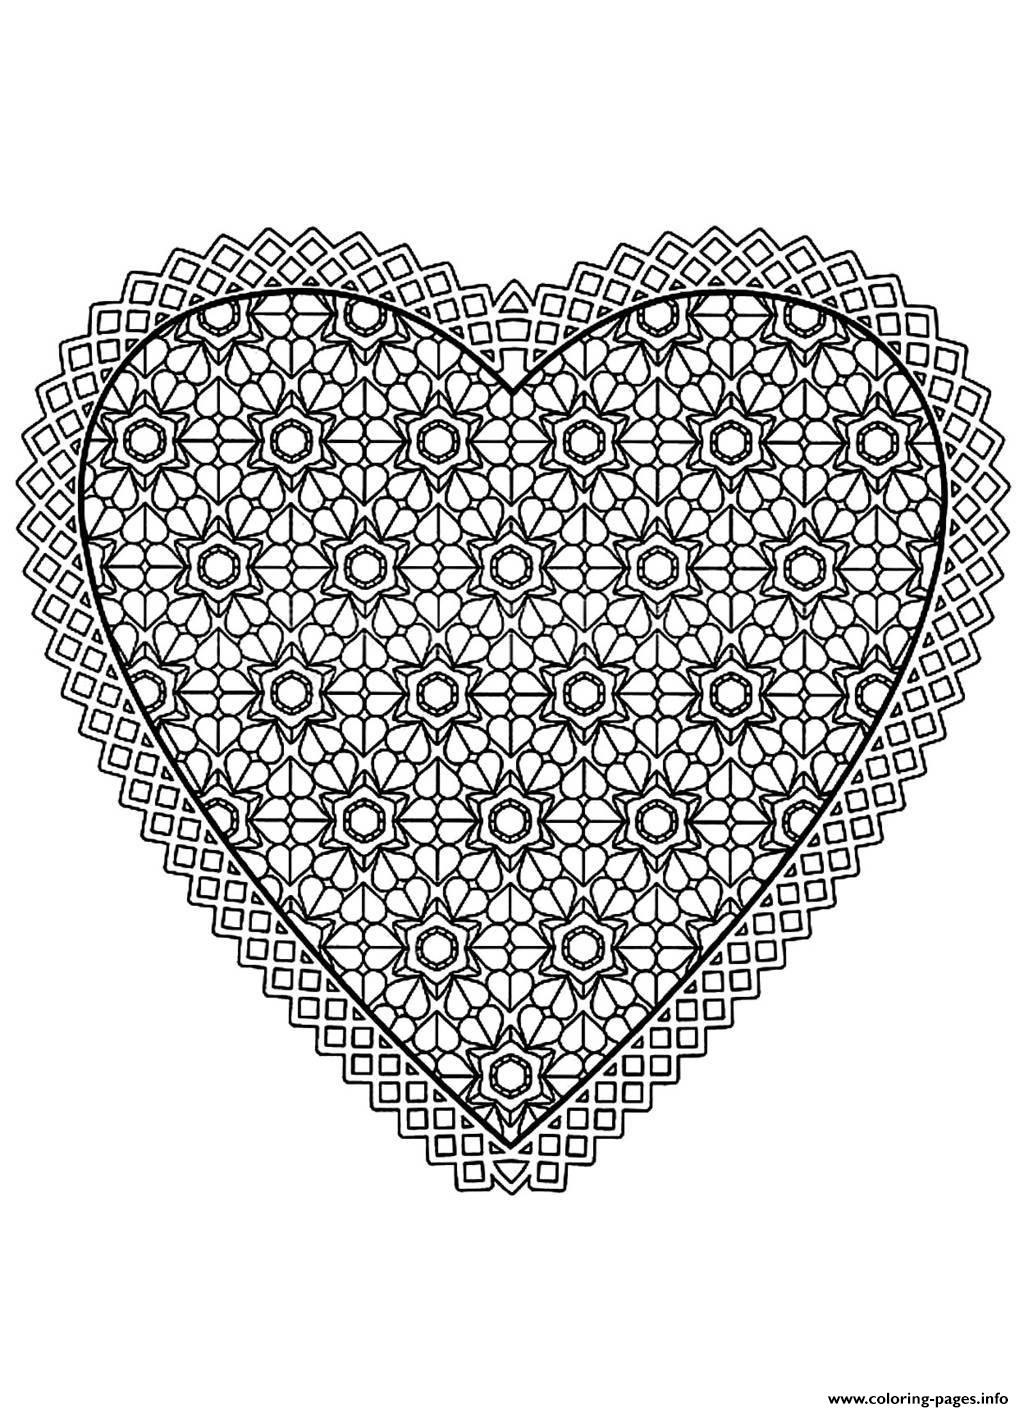 Free Mandala Difficult Adult To Print Heart Coloring Pages Printable